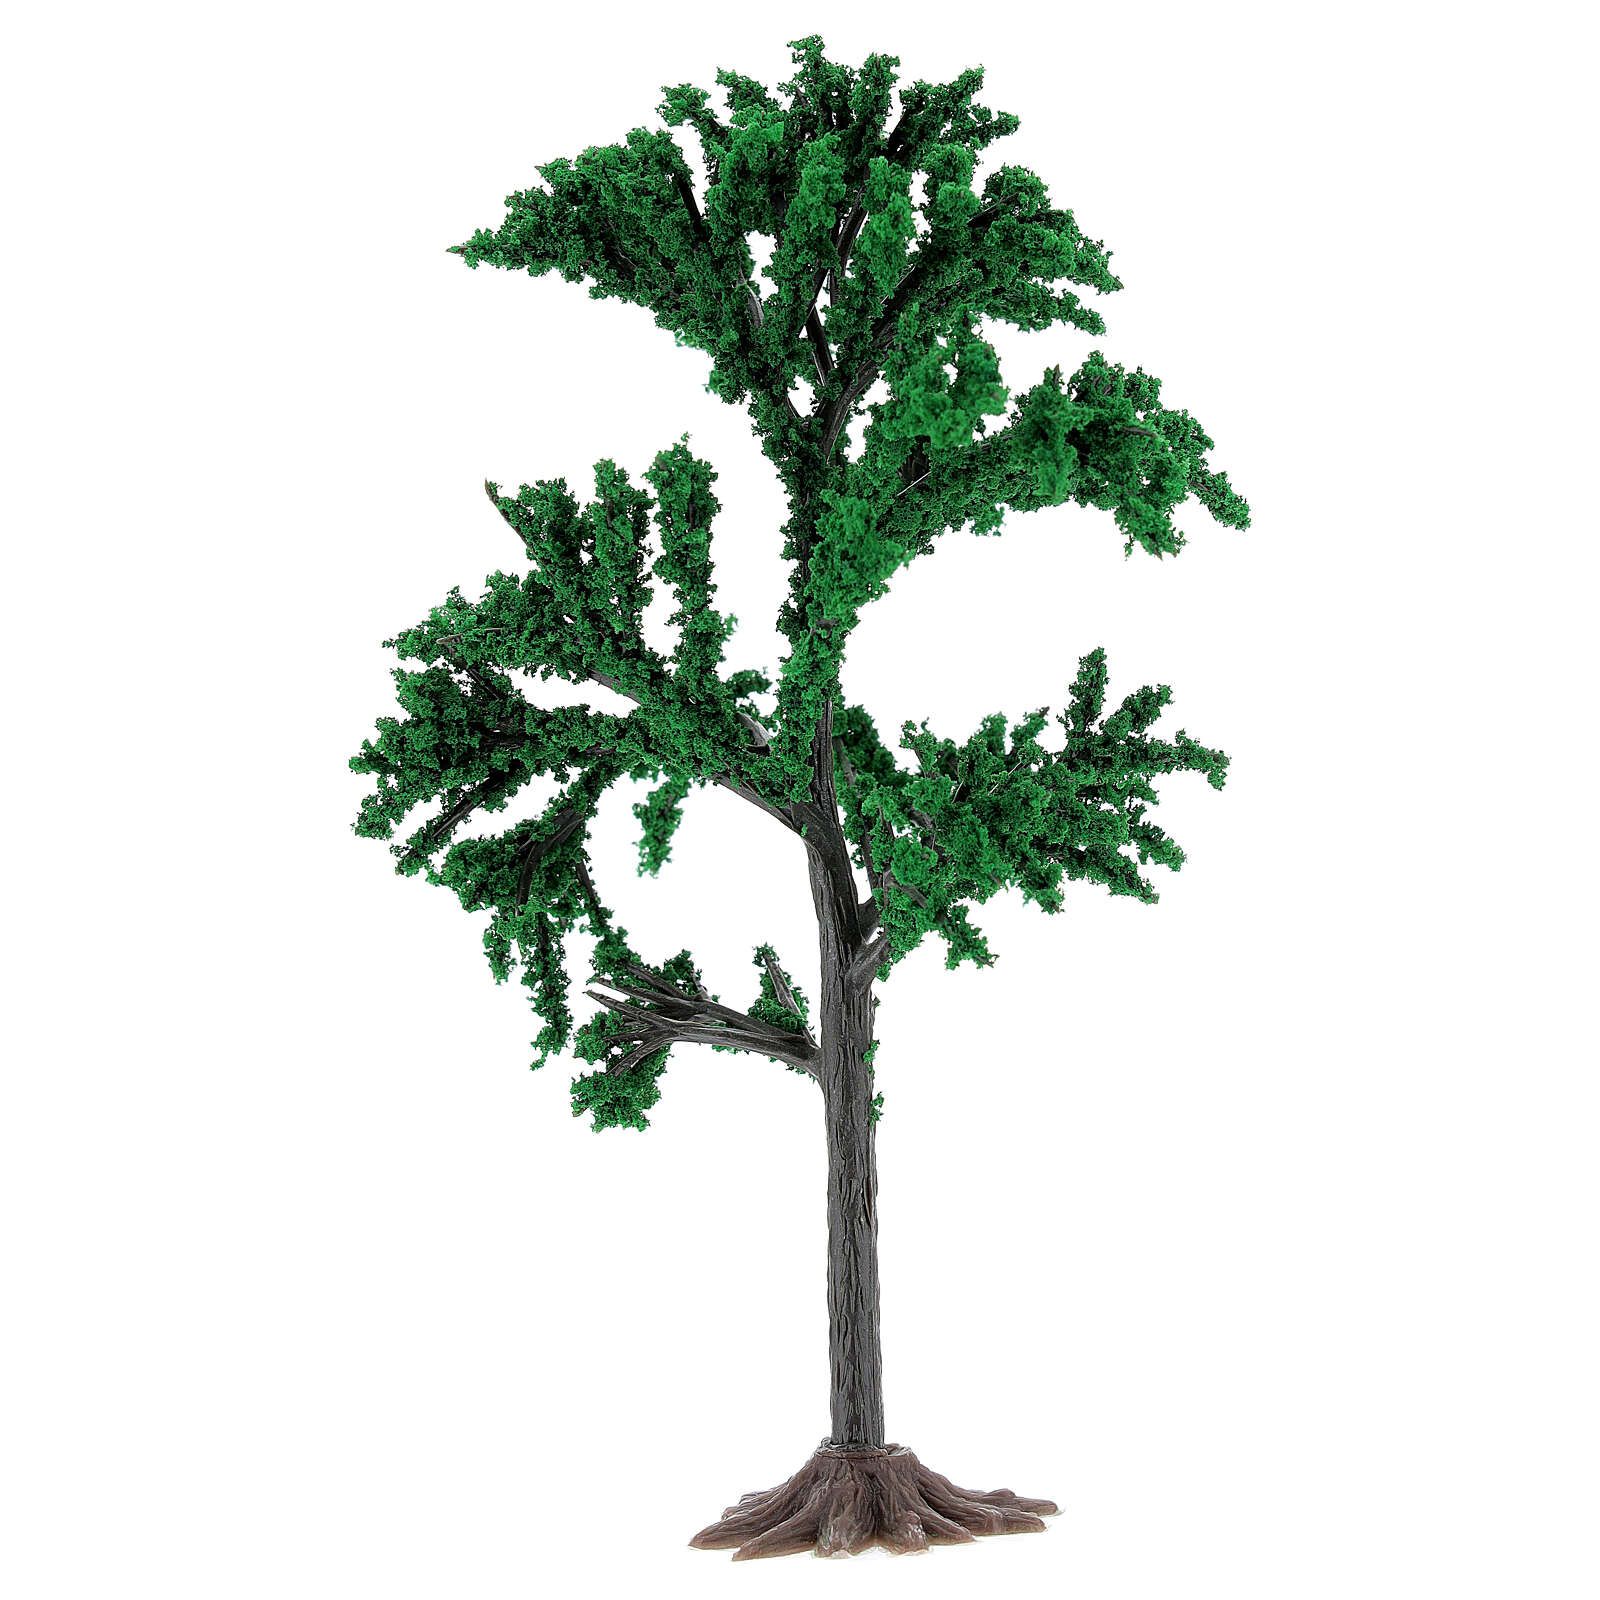 Tree green leaves for Nativity Scene with 4-8 cm figurines 4